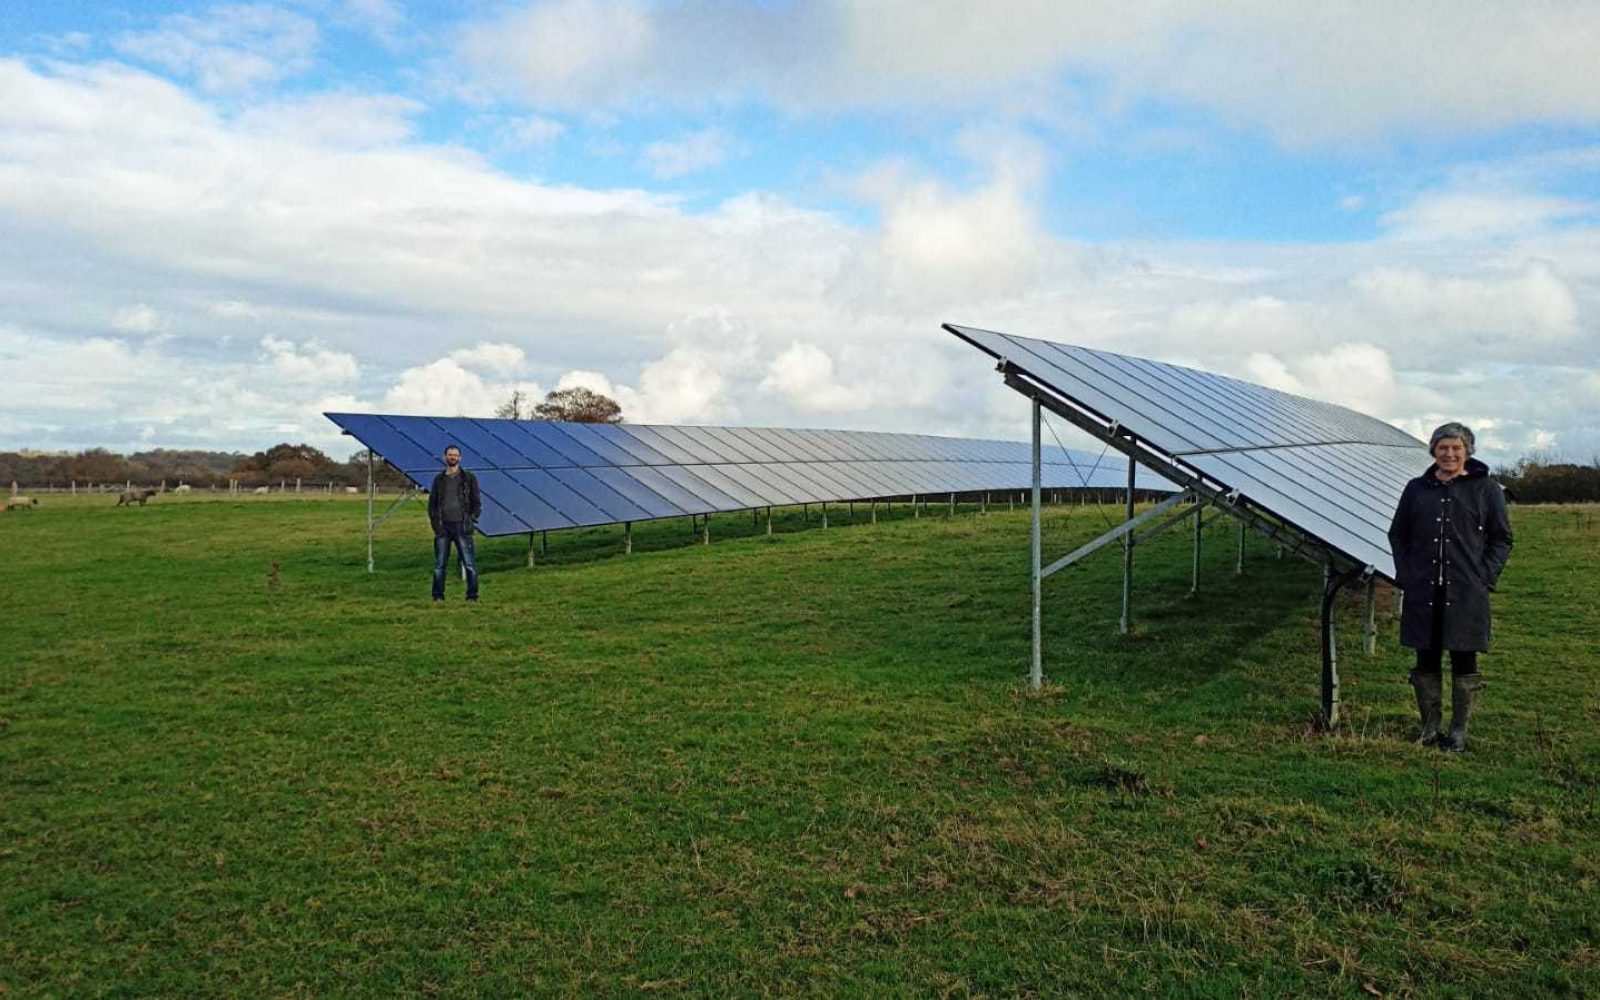 The Sewells Farm in Barcombe, which provides renewable energy to a local business park. Image: UKPN.